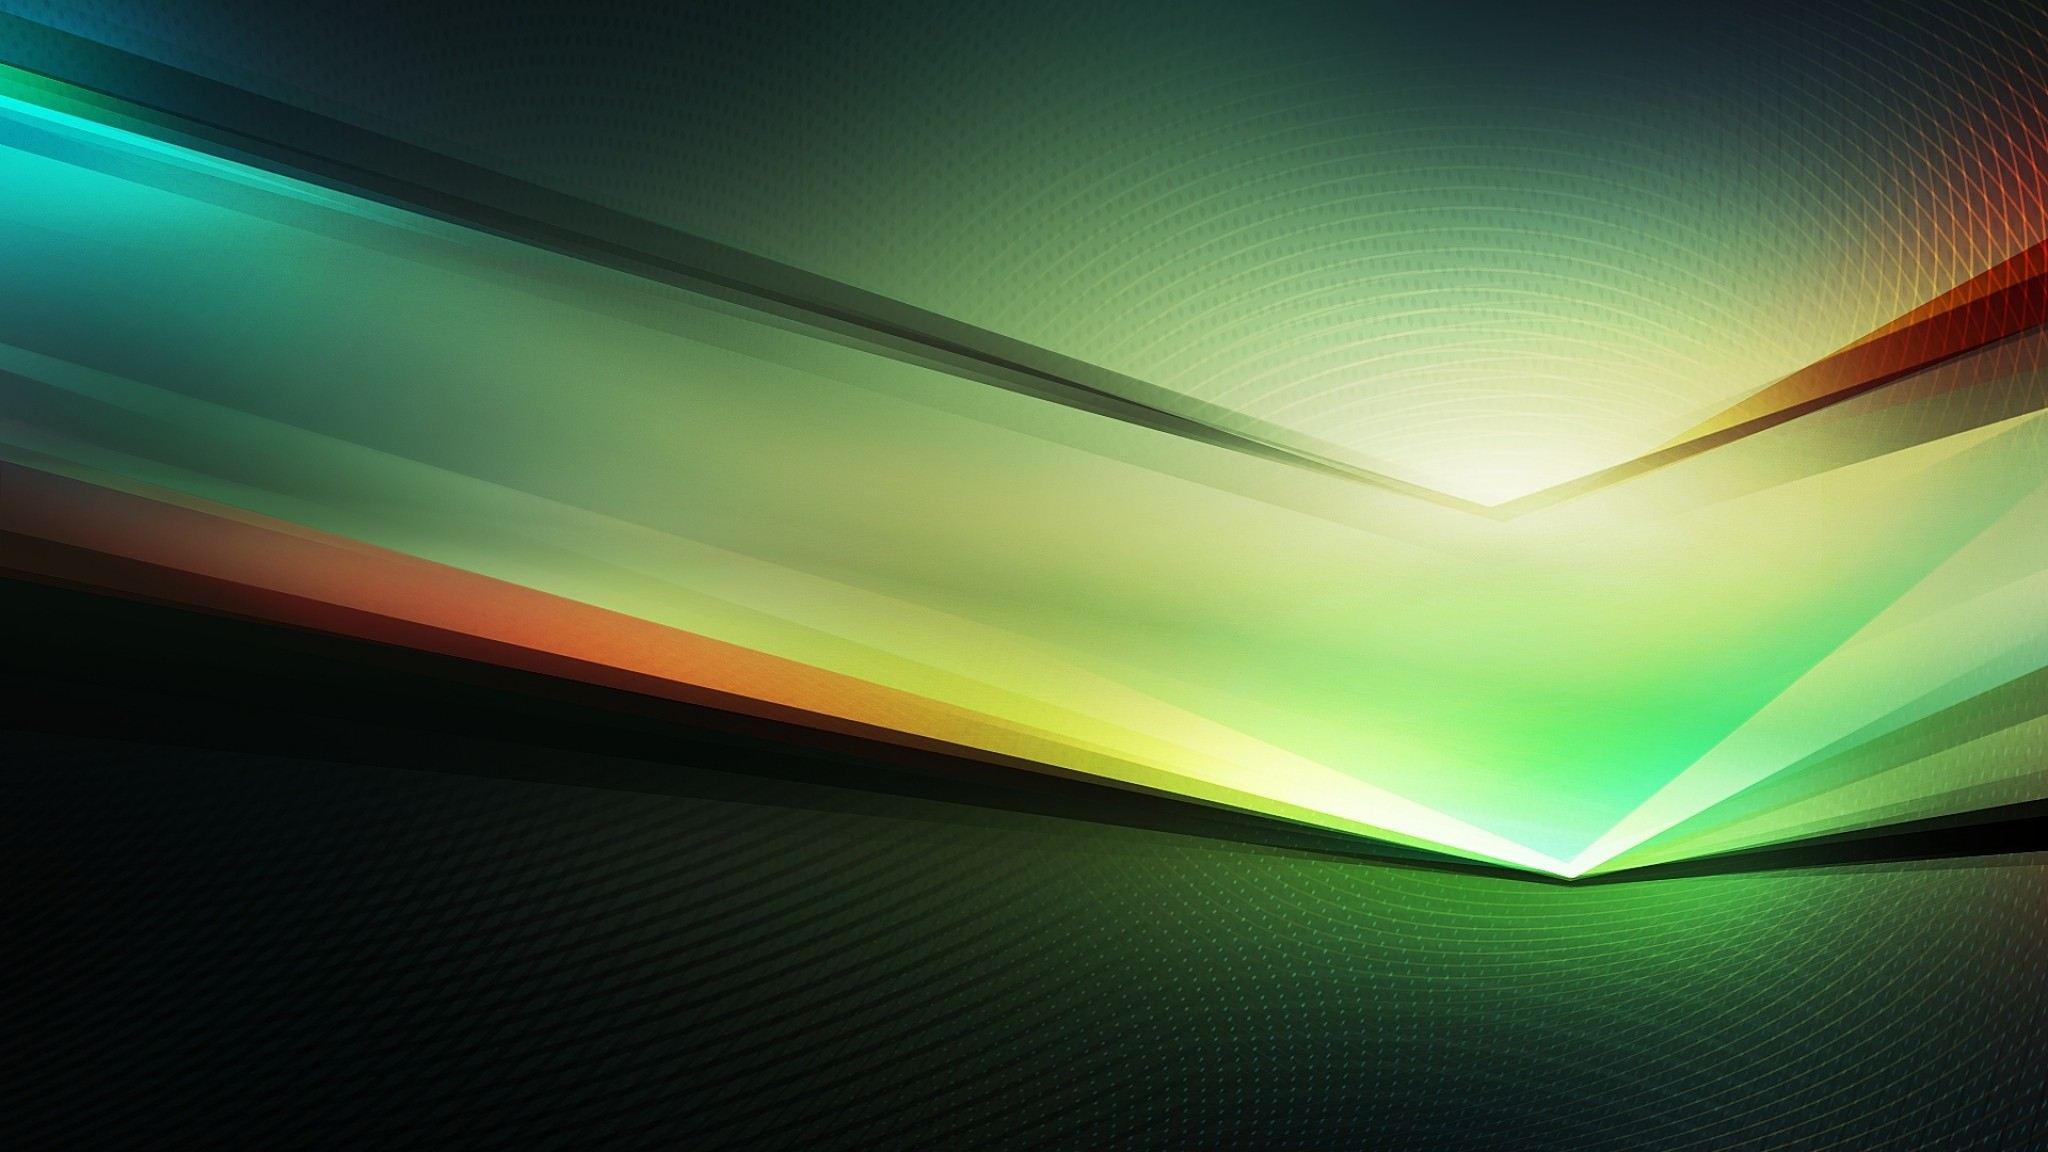 2048x1152  Wallpaper green, dark, lines, light